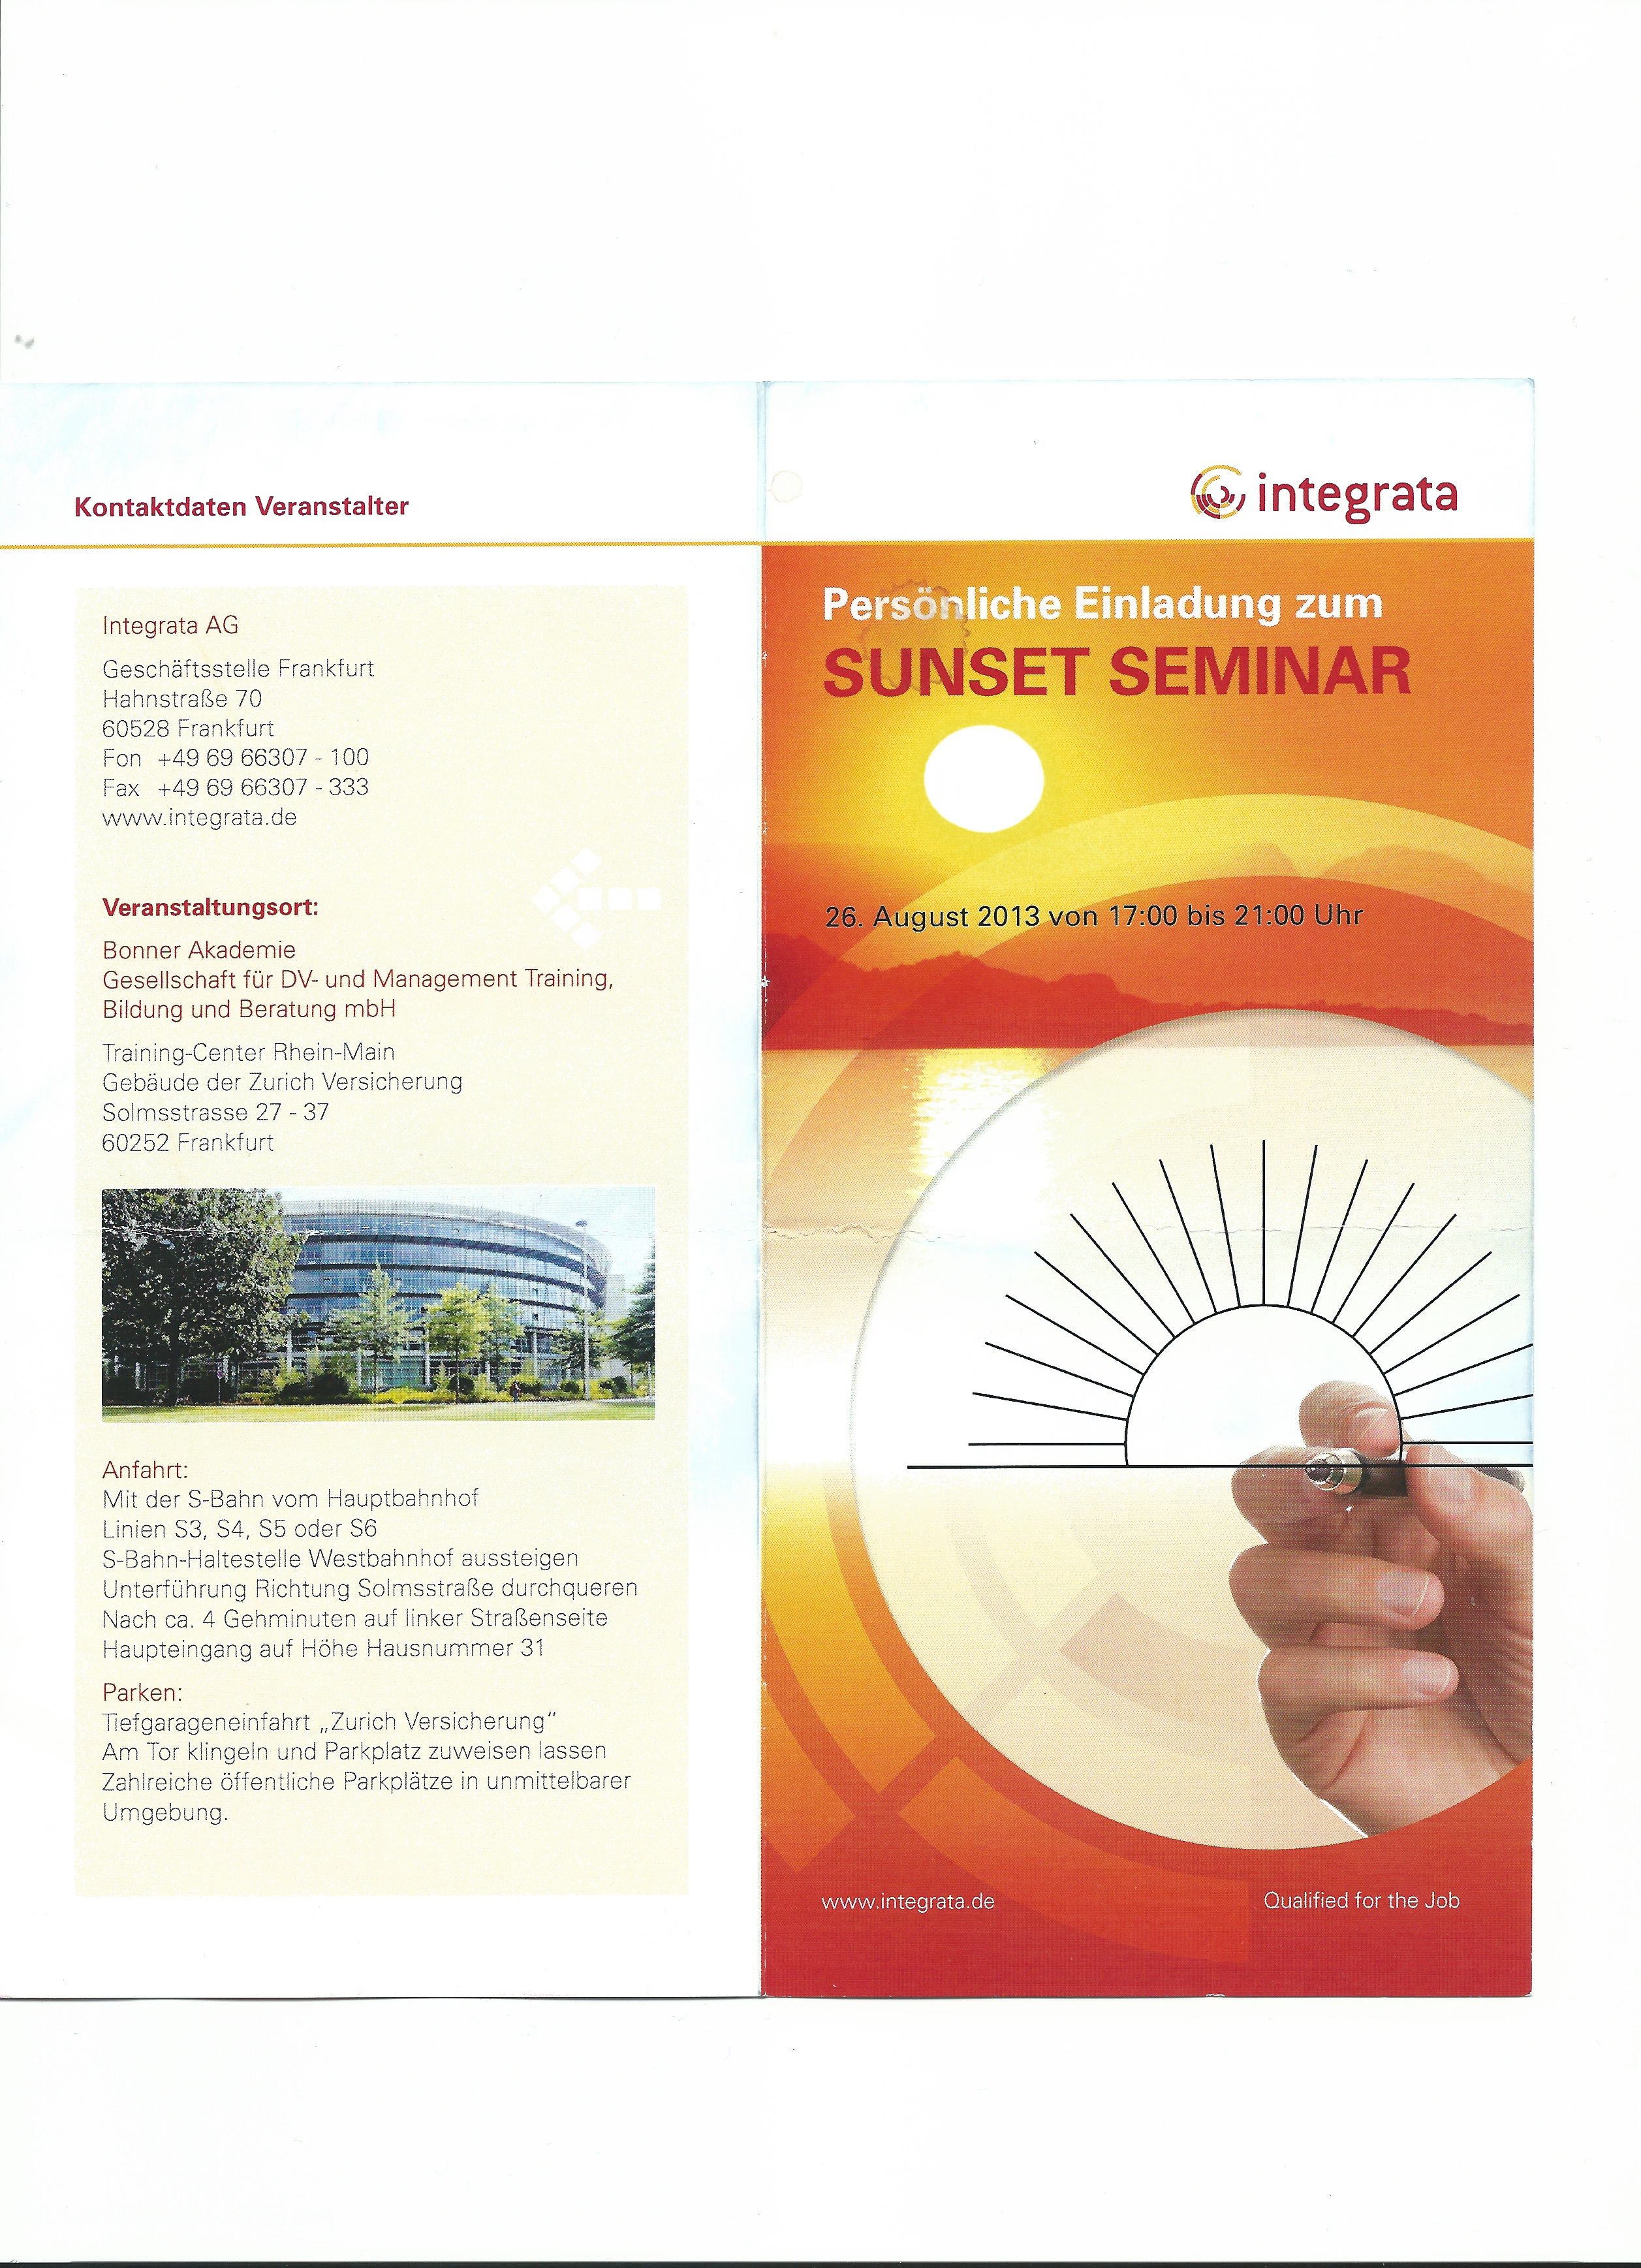 SUNSET SEMINAR der Integrata in Frankfurt